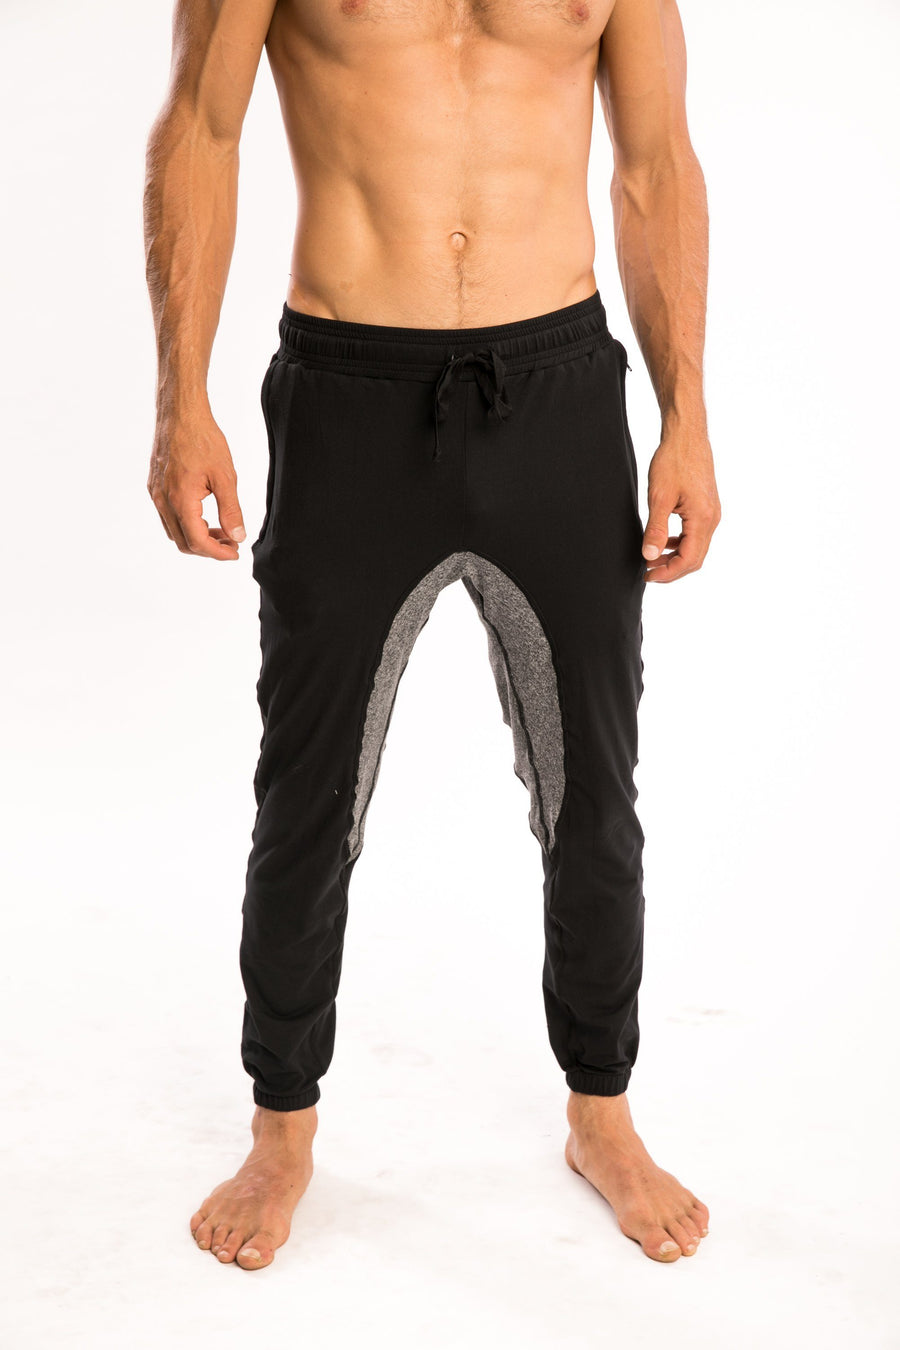 BLACK/GRAY Ninja Pant-PANTS-Pi Movement-XS-Pi Movement